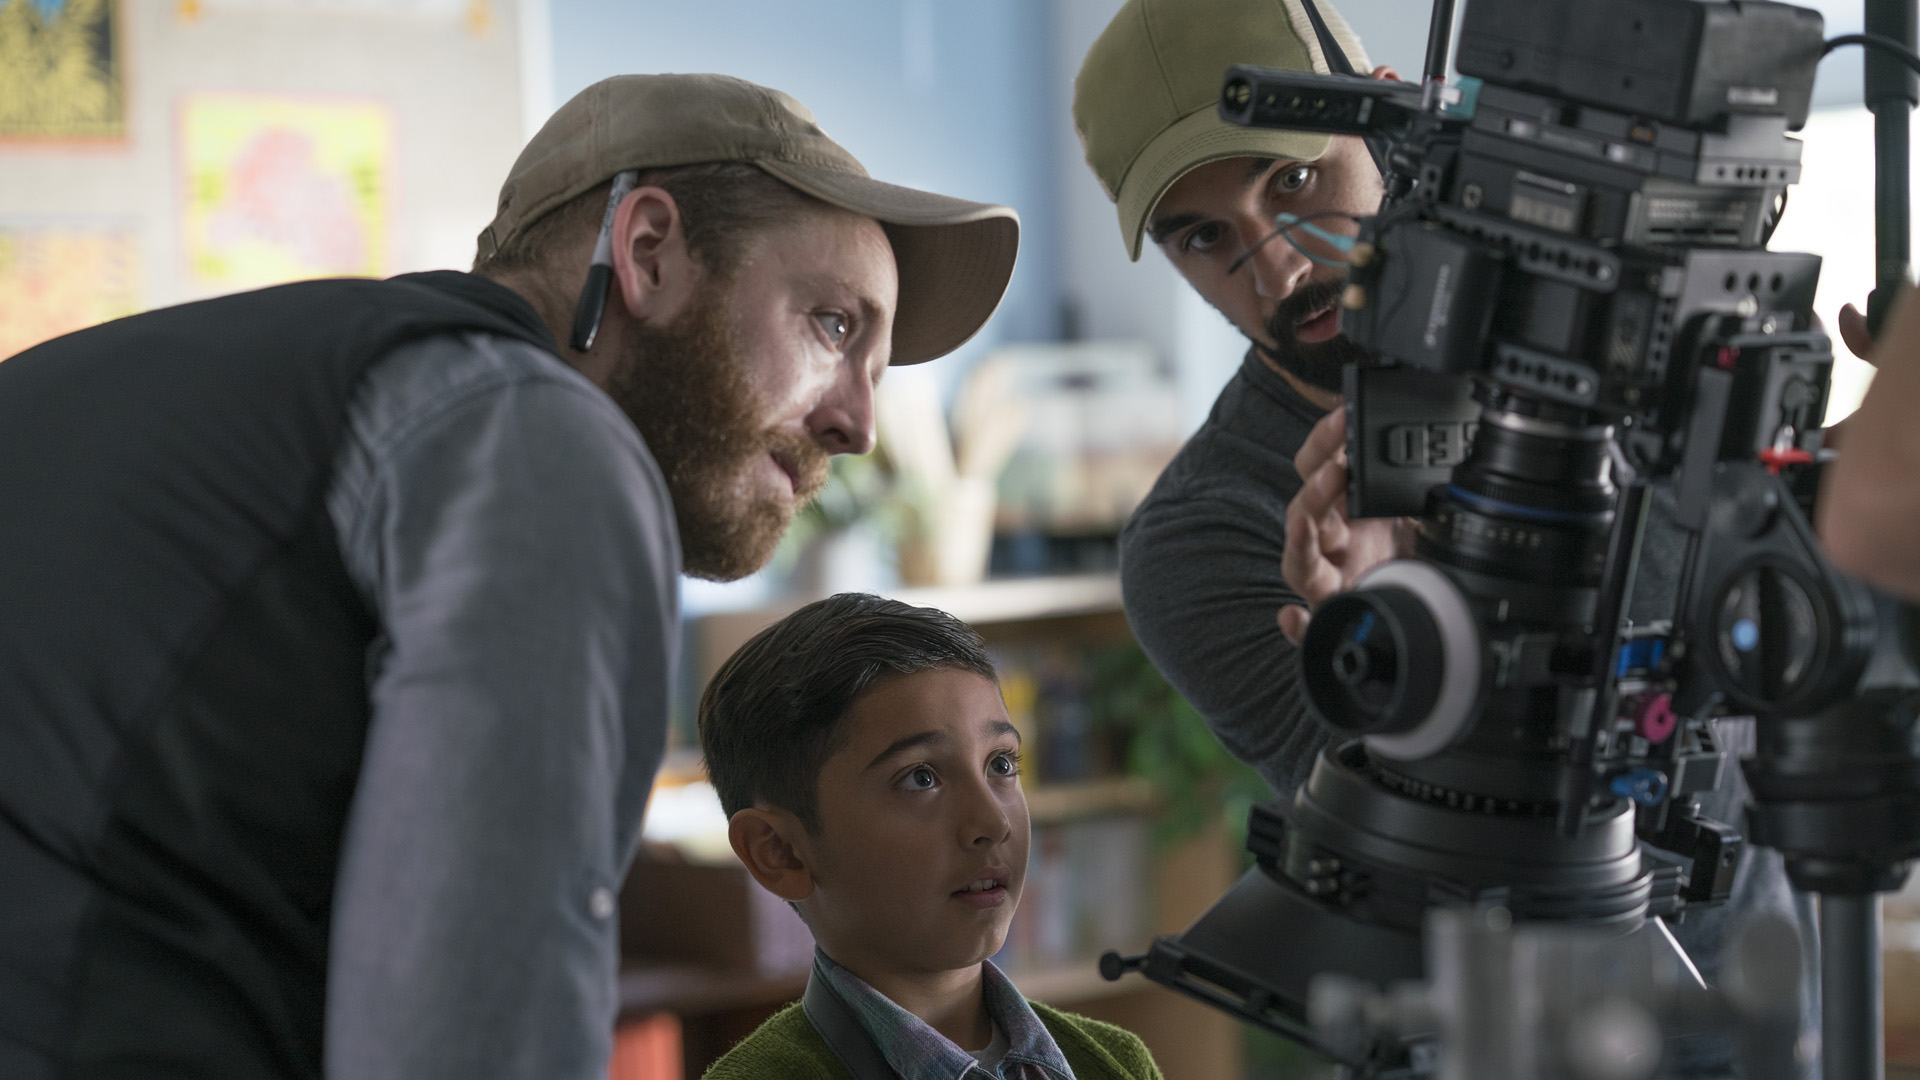 Scott and DP Ian Wells help Joseph line-up a quick insert. All of the key props and classroom dressing were meticulously crafted by Justyna Kornacka and Viviana Palacio, whose talents we were fortunate to have access to for this project.